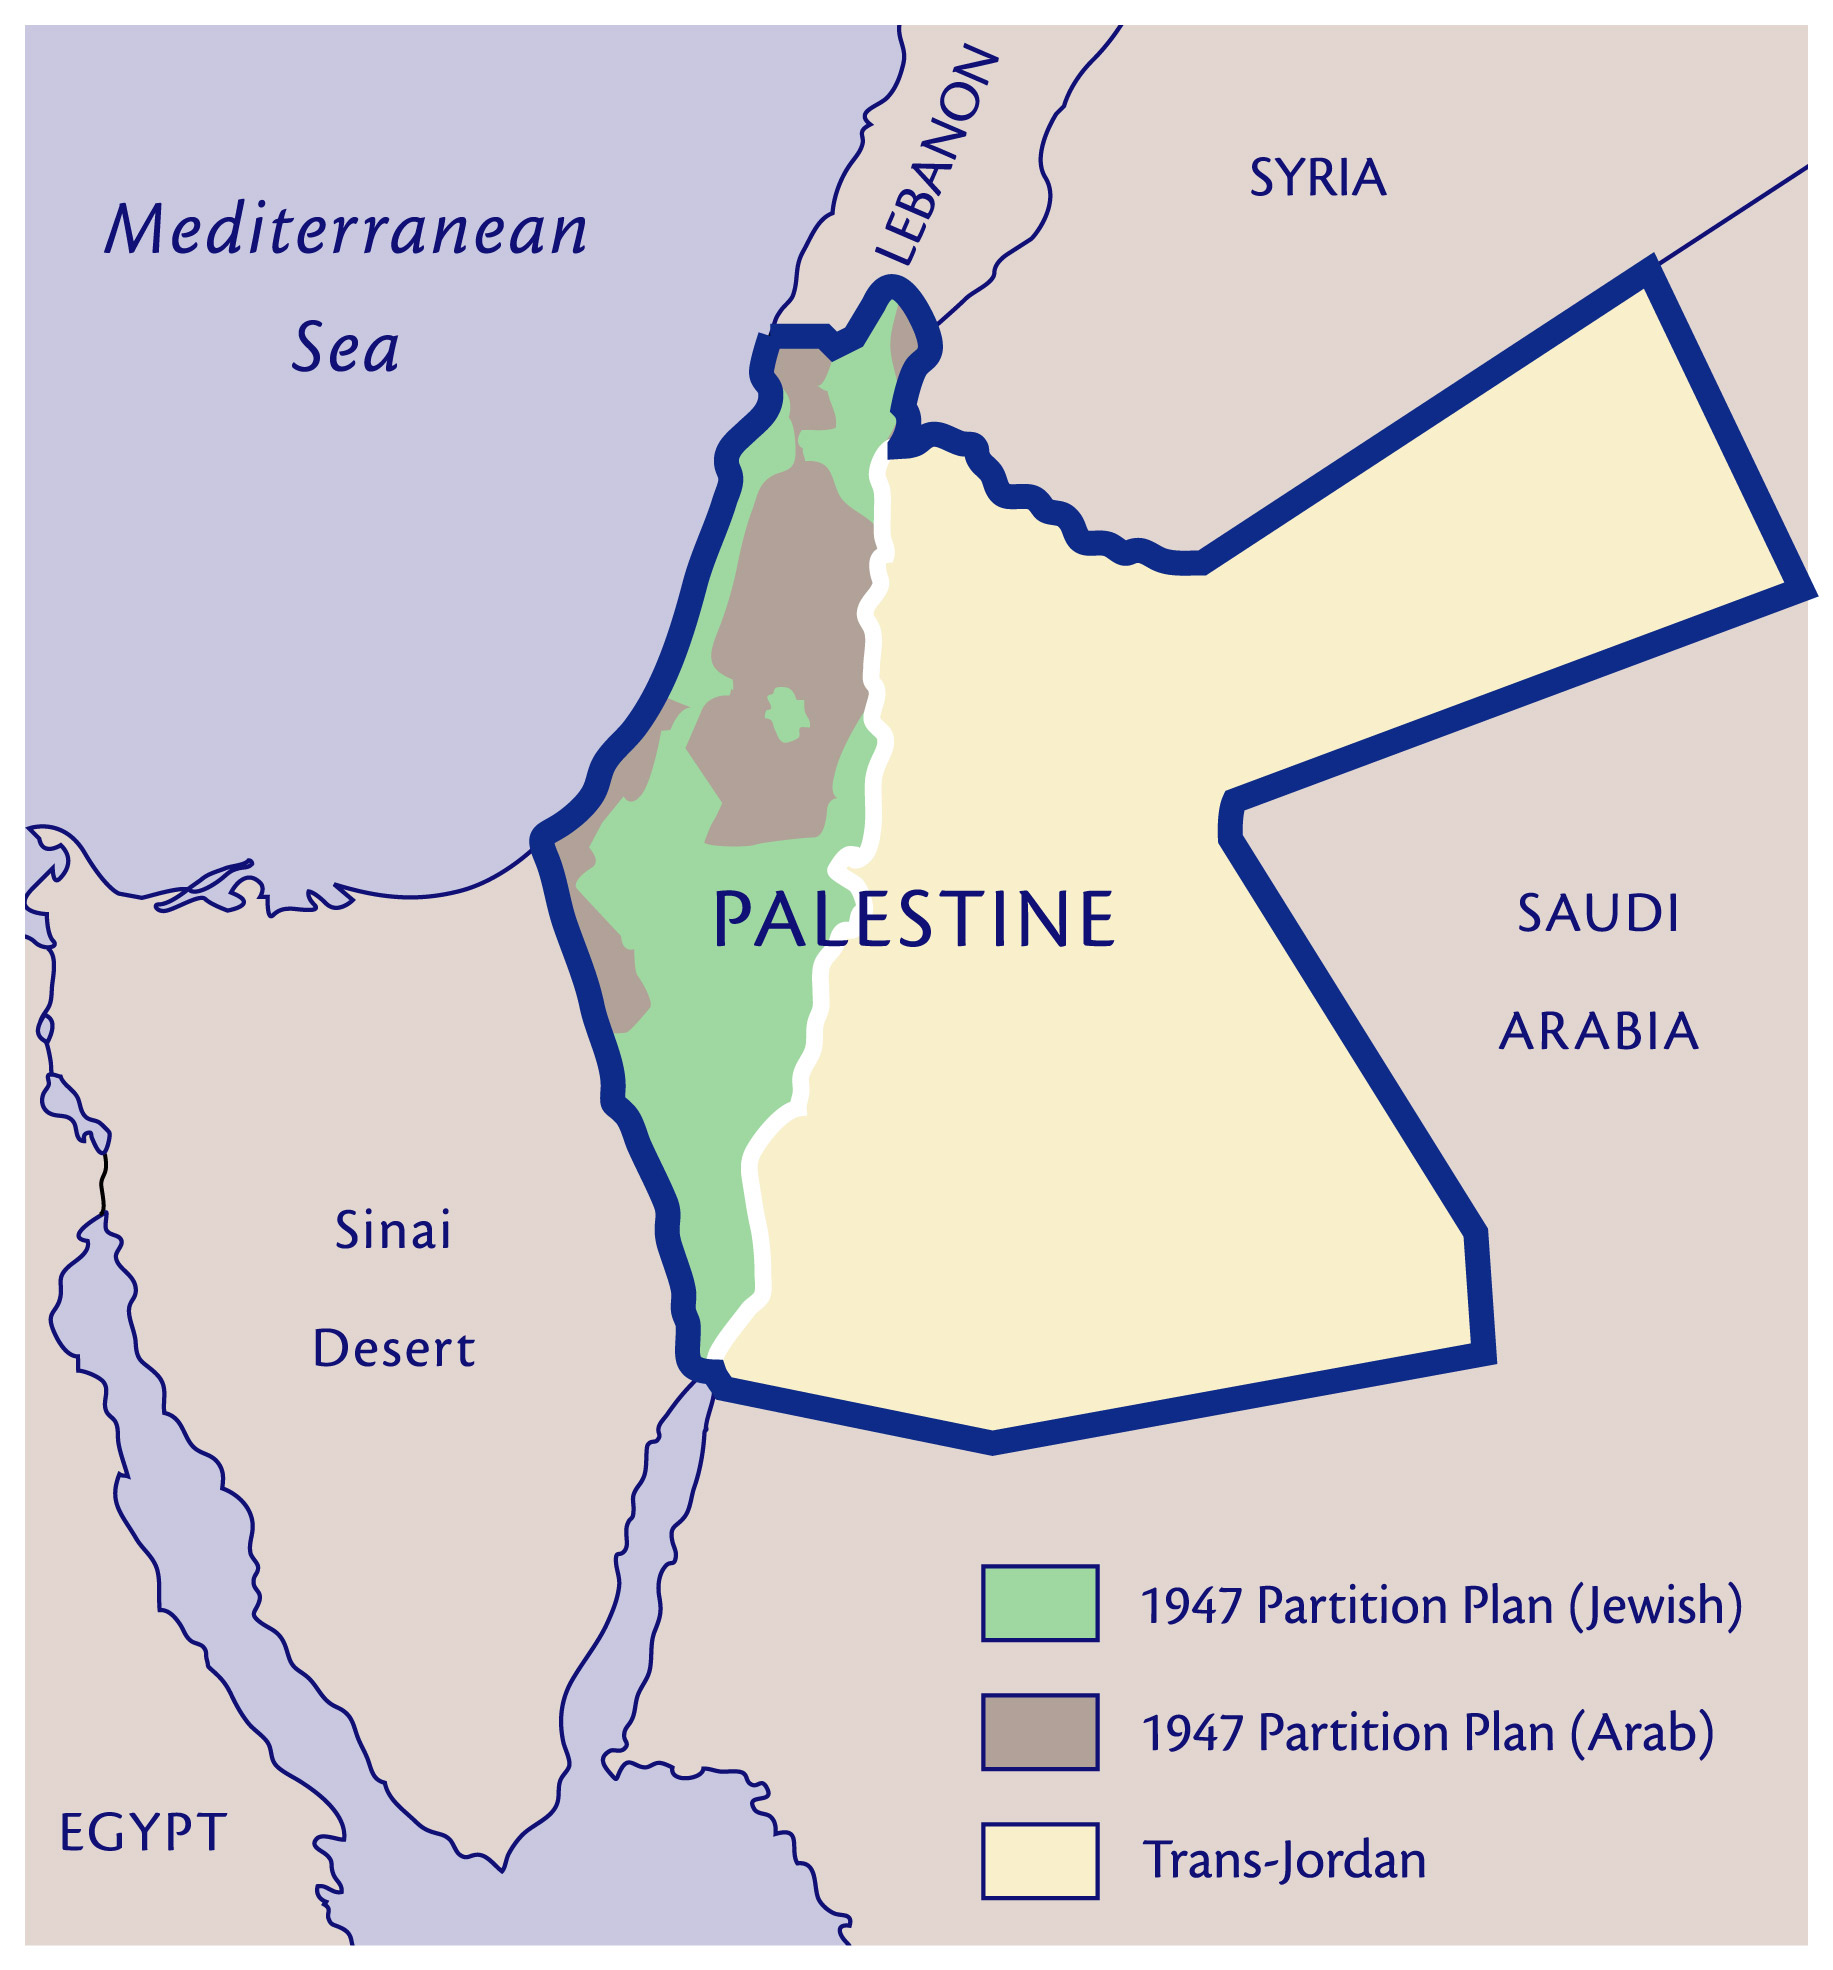 a history of the four major arab israeli conflicts over palestine since 1947 Encyclopedia of jewish and israeli history, politics and culture, with biographies total casualties, arab-israeli conflict (1860 - present.